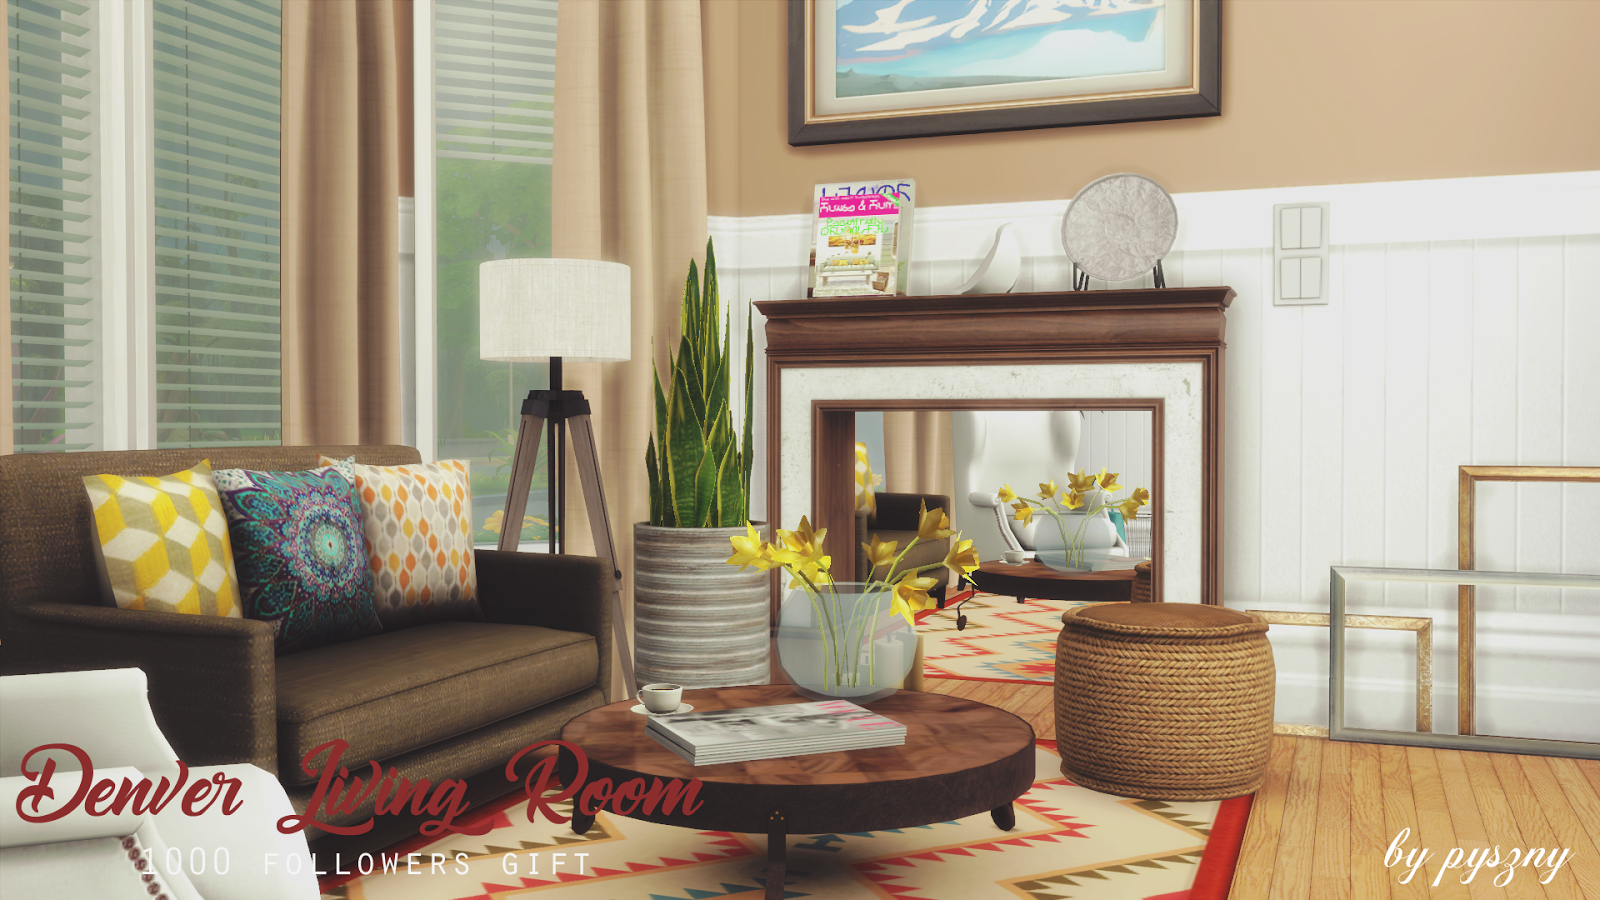 Living Room Denver : Denver Living Room - 1000 Followers on Tumblr Gift